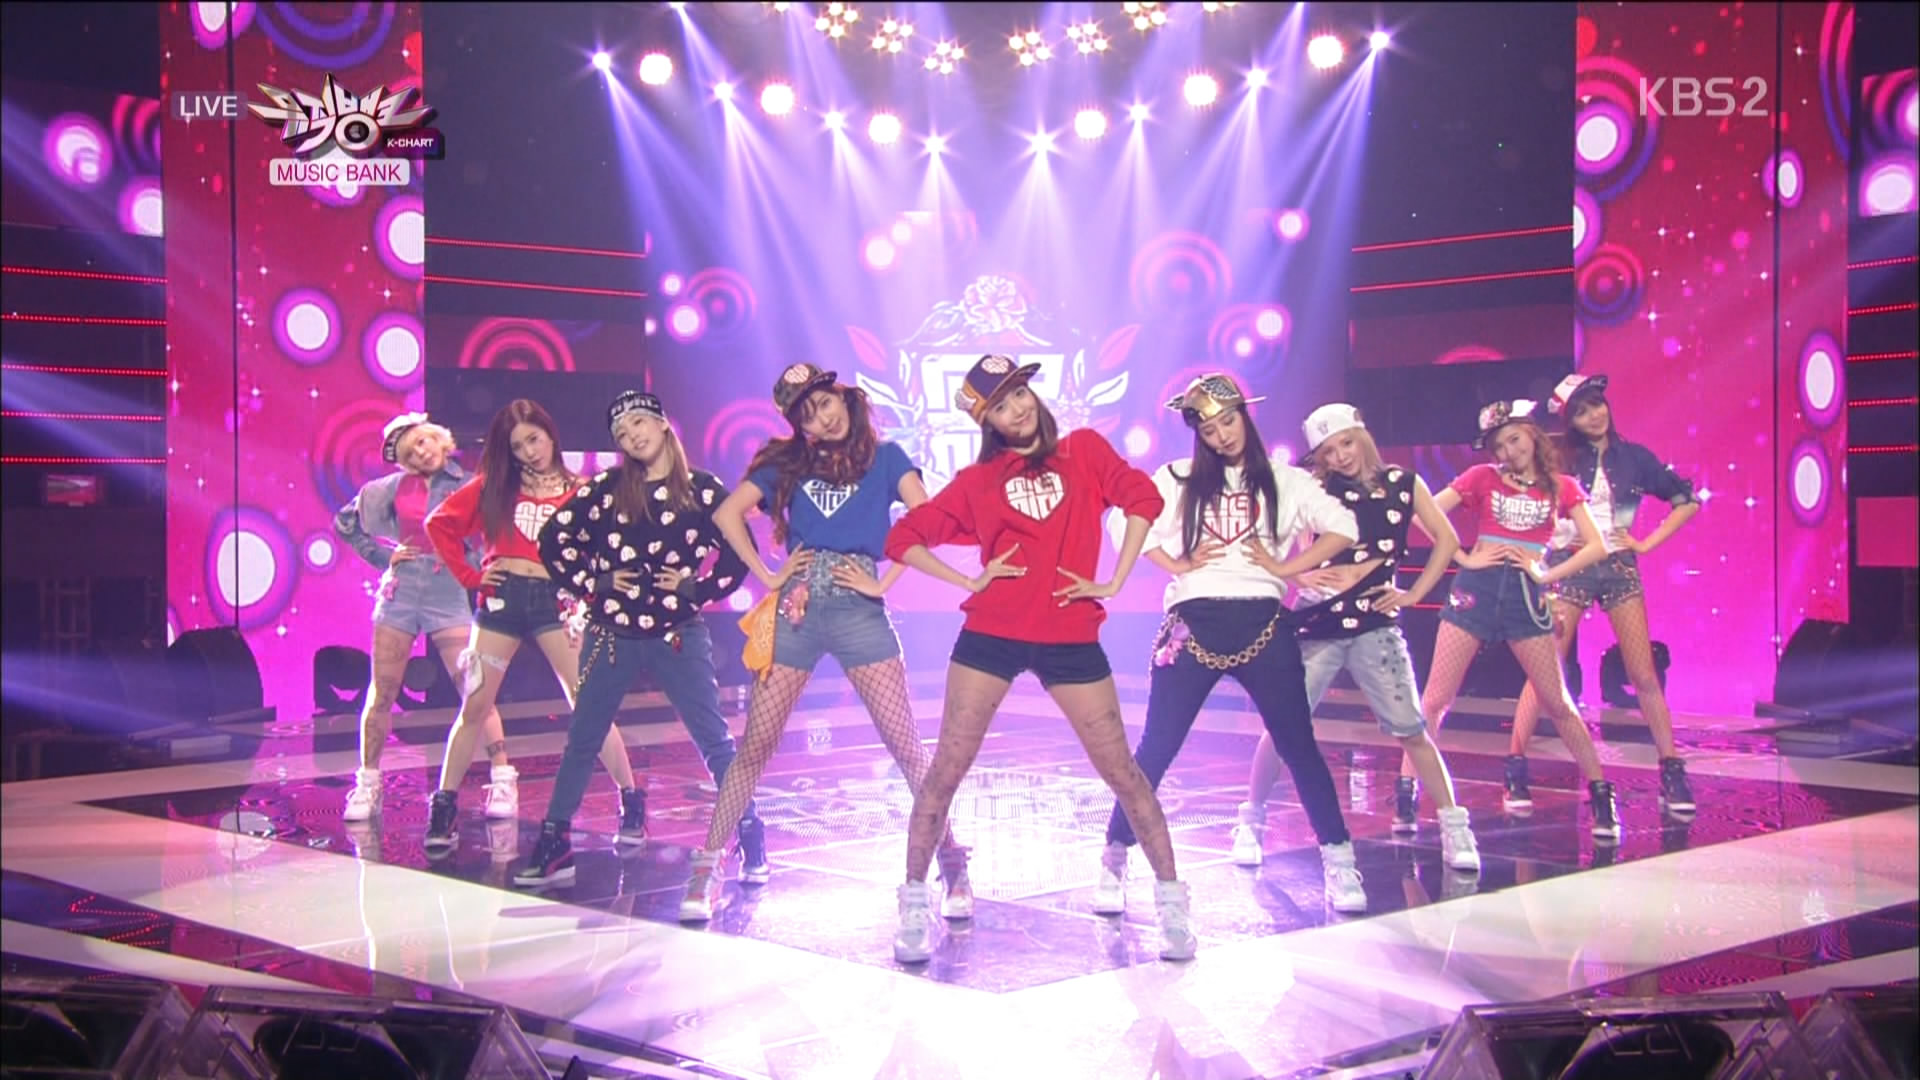 Girls generation special stage